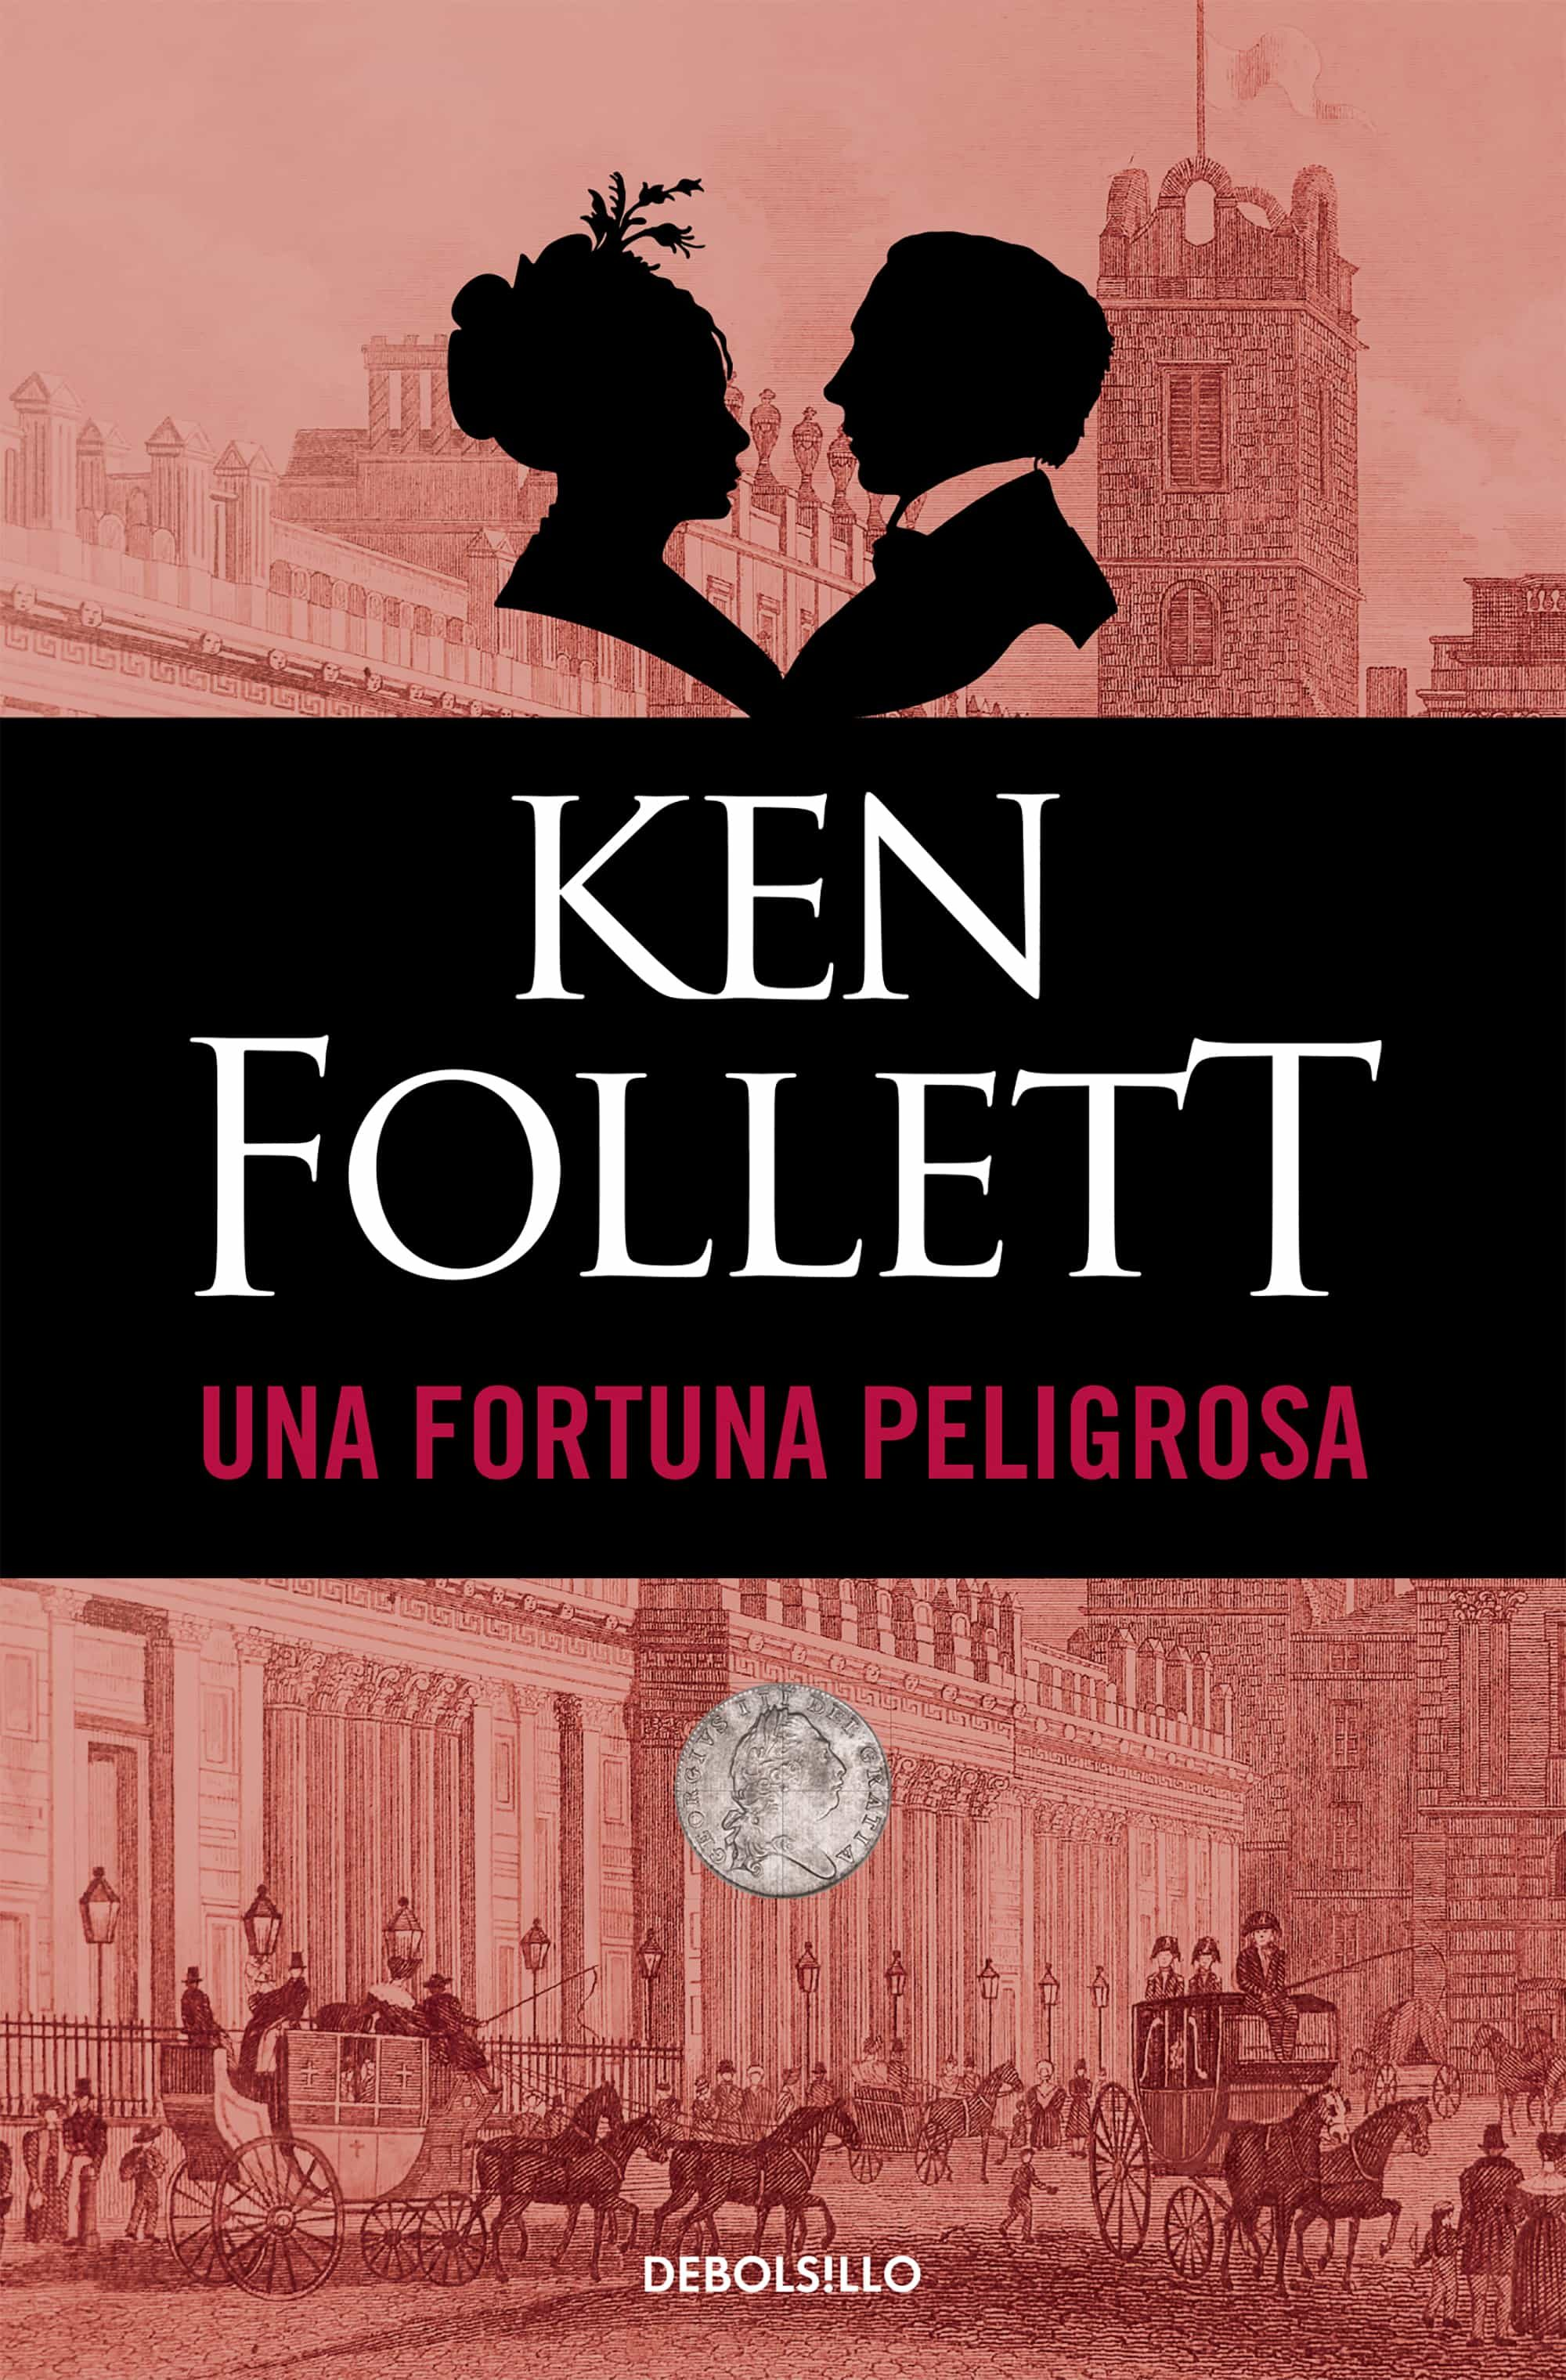 Descargar Libros Ken Follet Una Fortuna Peligrosa Ebook Ken Follett Descargar Libro Pdf O Epub 9788490329450